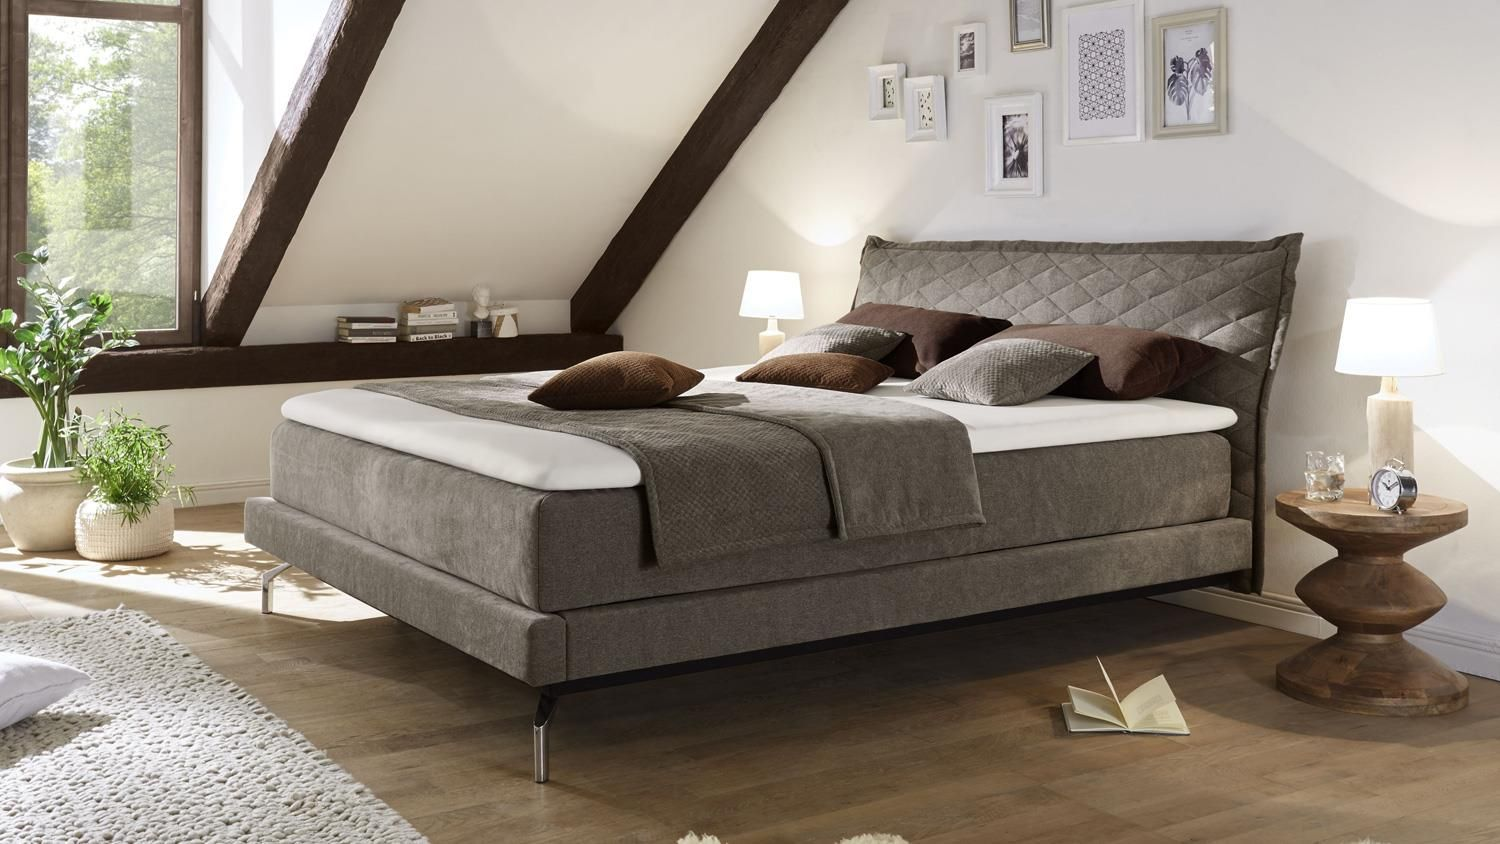 Boxspringbett 180x200 Bewertung Check More At Http Dolmentours